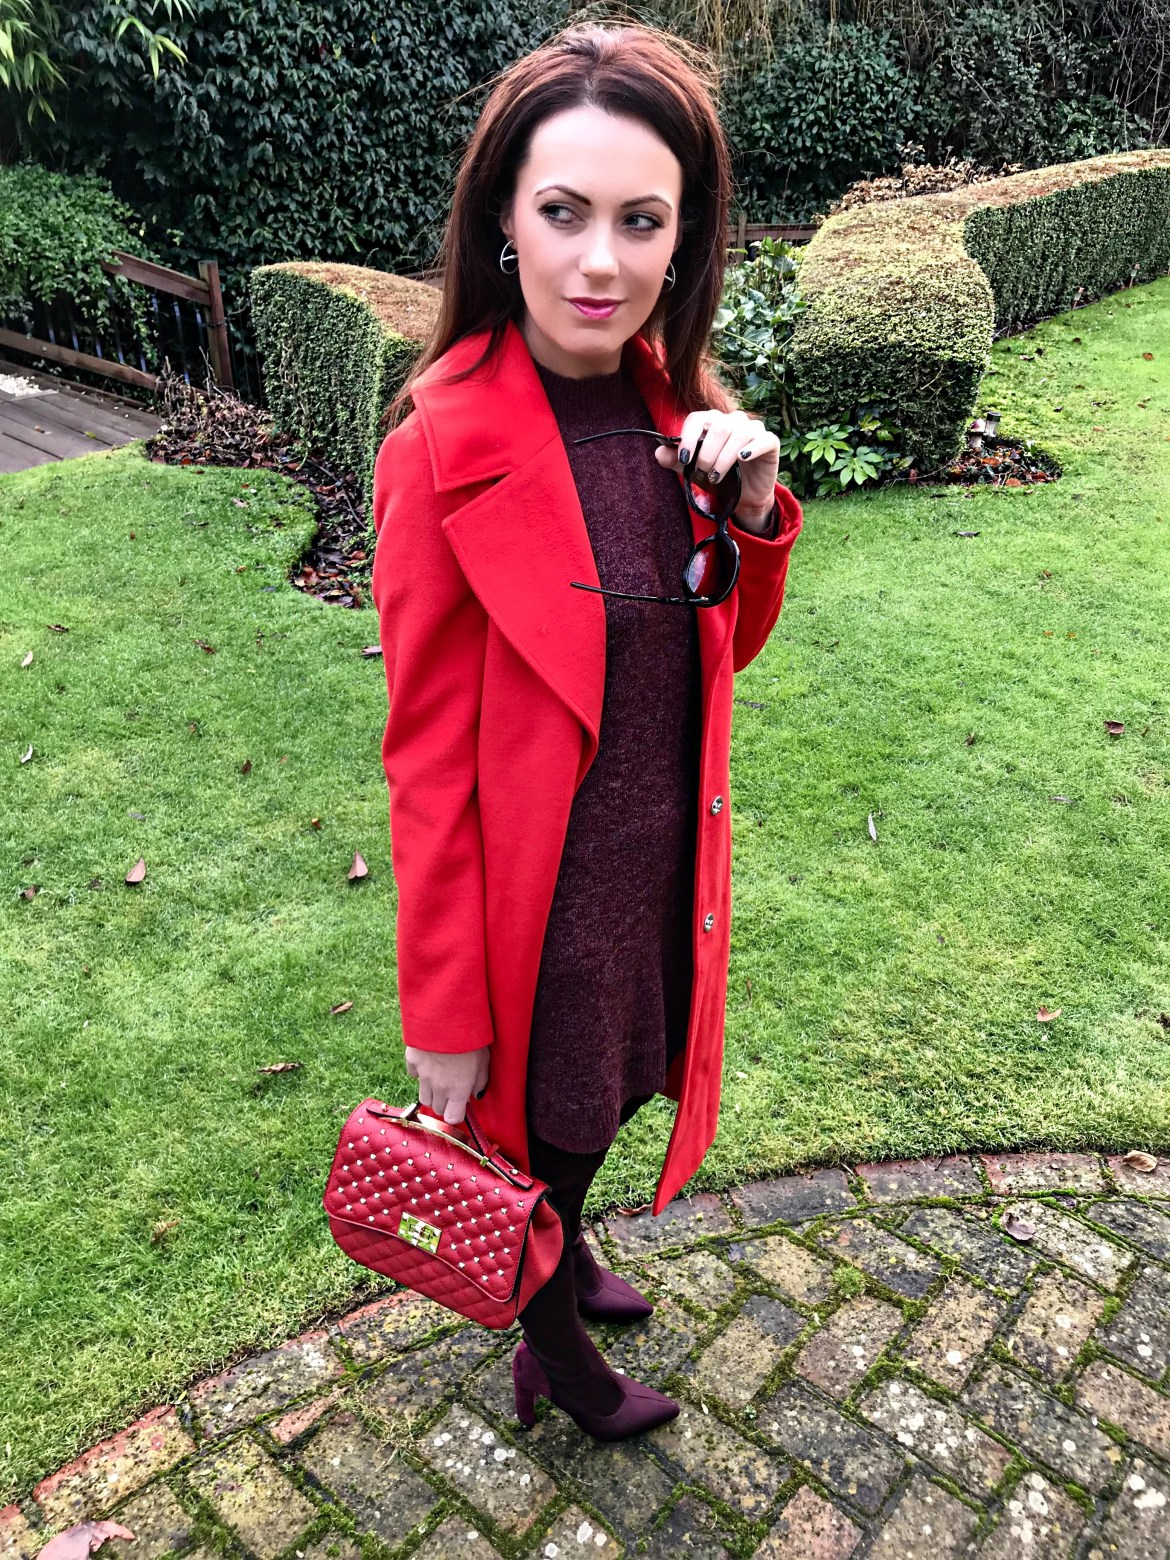 Miss Selfridge Smart Midi Coat | V by Very Quilt and Stud Satchel | River Island River Island Knitted Over The Knee Boots- Dark Red | Abercrombie & Fitch Burgundy Long Sleeve Knit Dress Shades of Valentine | Red long coat & Burgundy boots | Swarovski earrings | Baroque Prada sunglasses